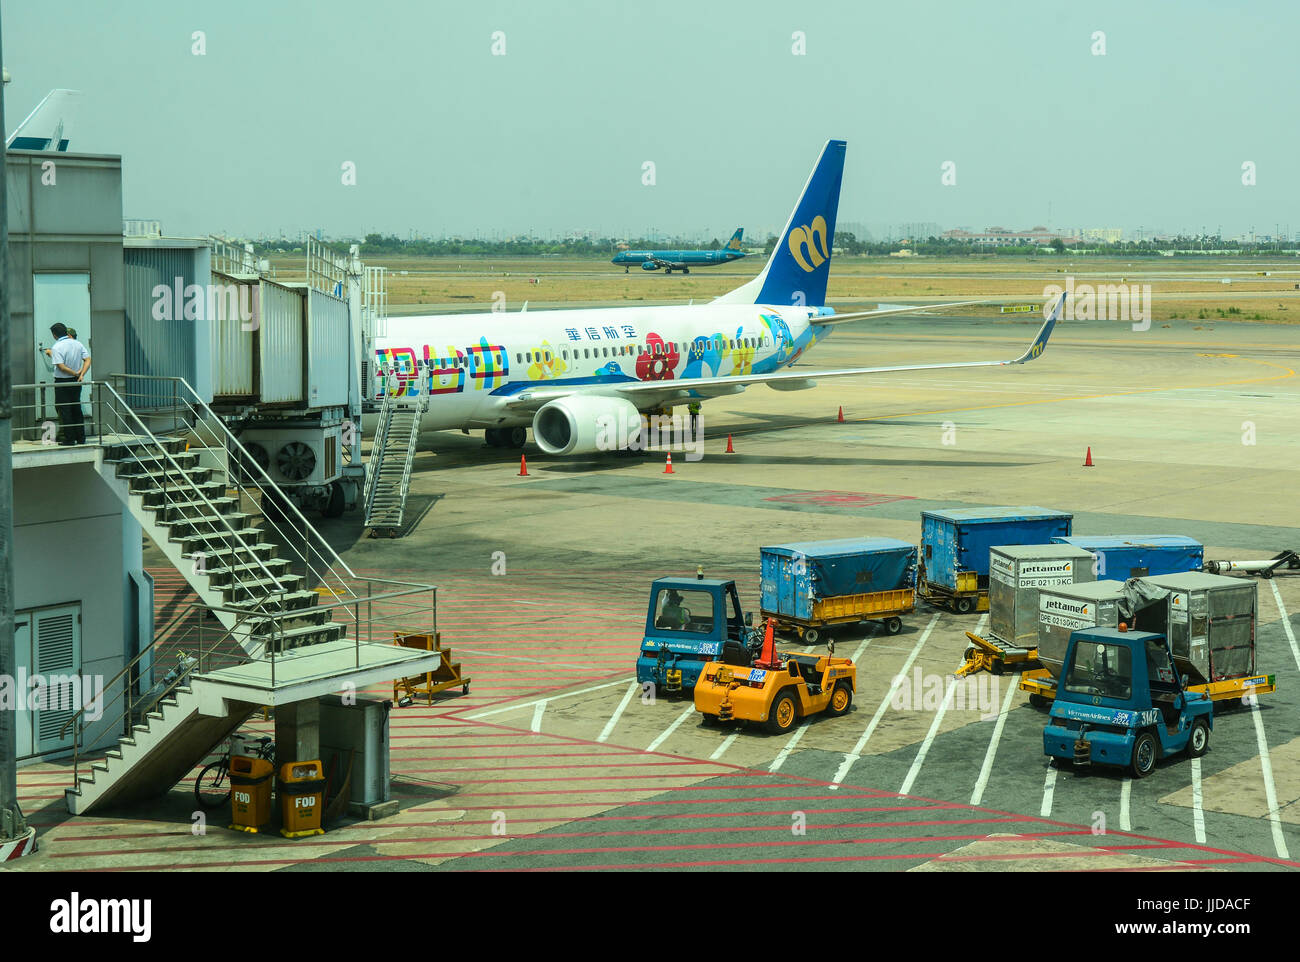 Saigon, Vietnam - Mar 9, 2016. Civil aircraft docking at Tan Son Nhat Intl Airport in Saigon, Vietnam. The airport - Stock Image